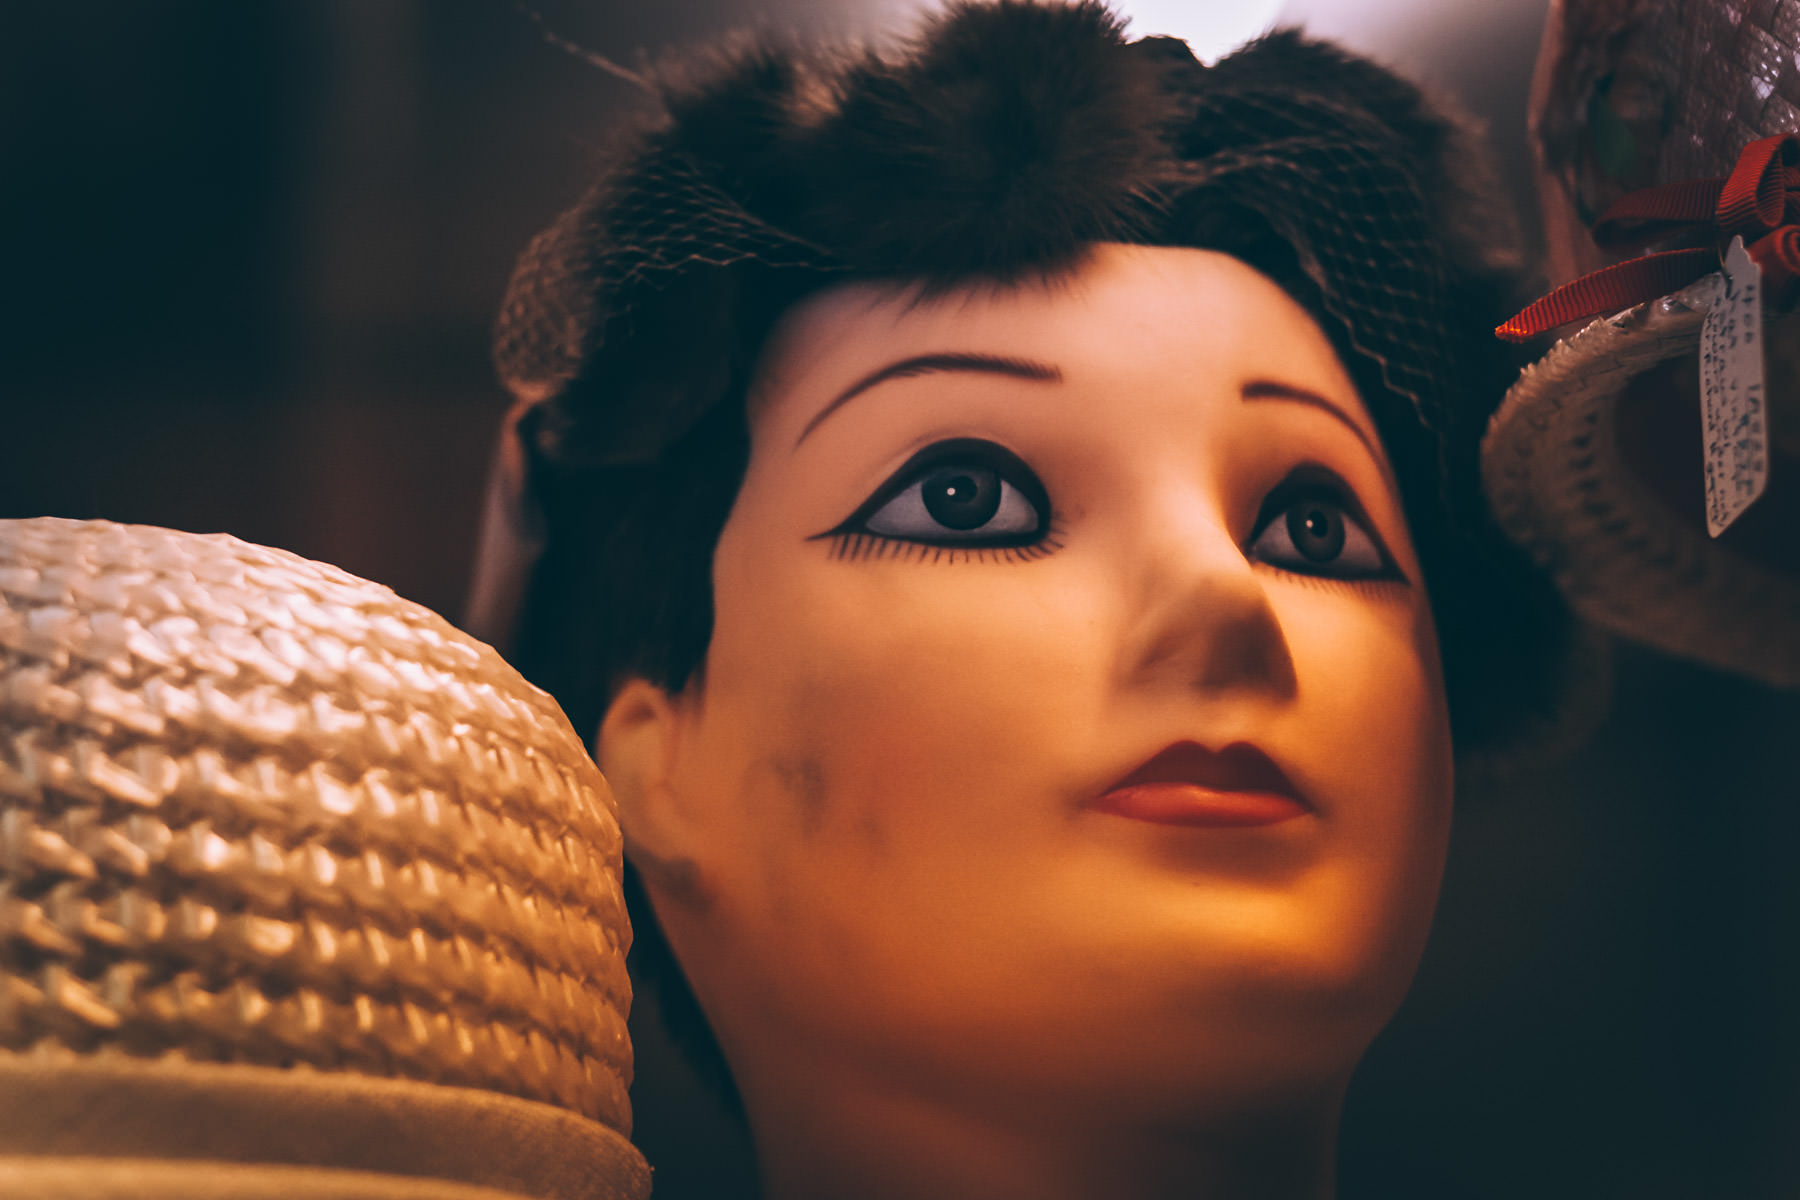 A wig display mannequin head at an antique shop in Gladewater, Texas.